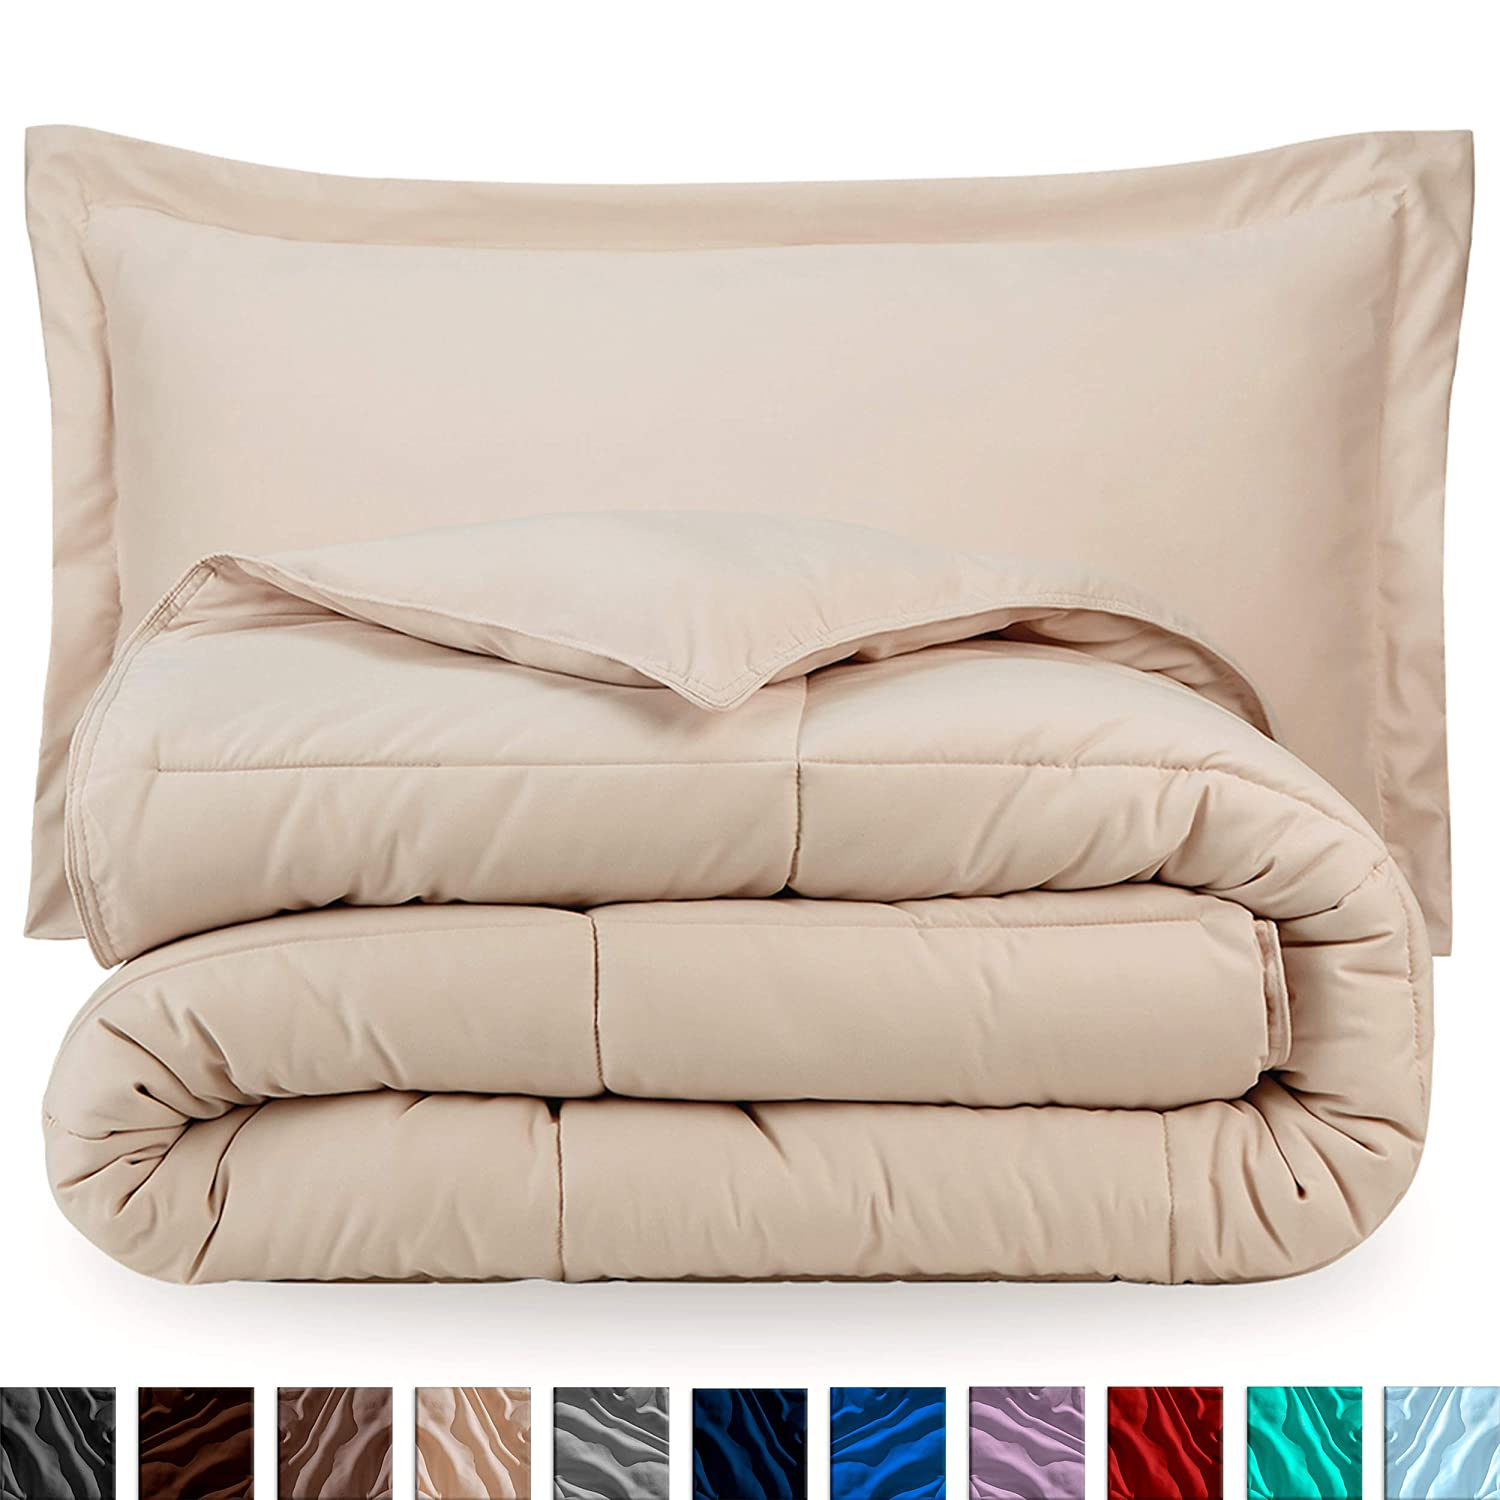 Bare Home Comforter Set - Full/Queen - Goose Down Alternative - Ultra-Soft - Premium 1800 Series - Hypoallergenic - All Season Breathable Warmth (Full/Queen, Sand)